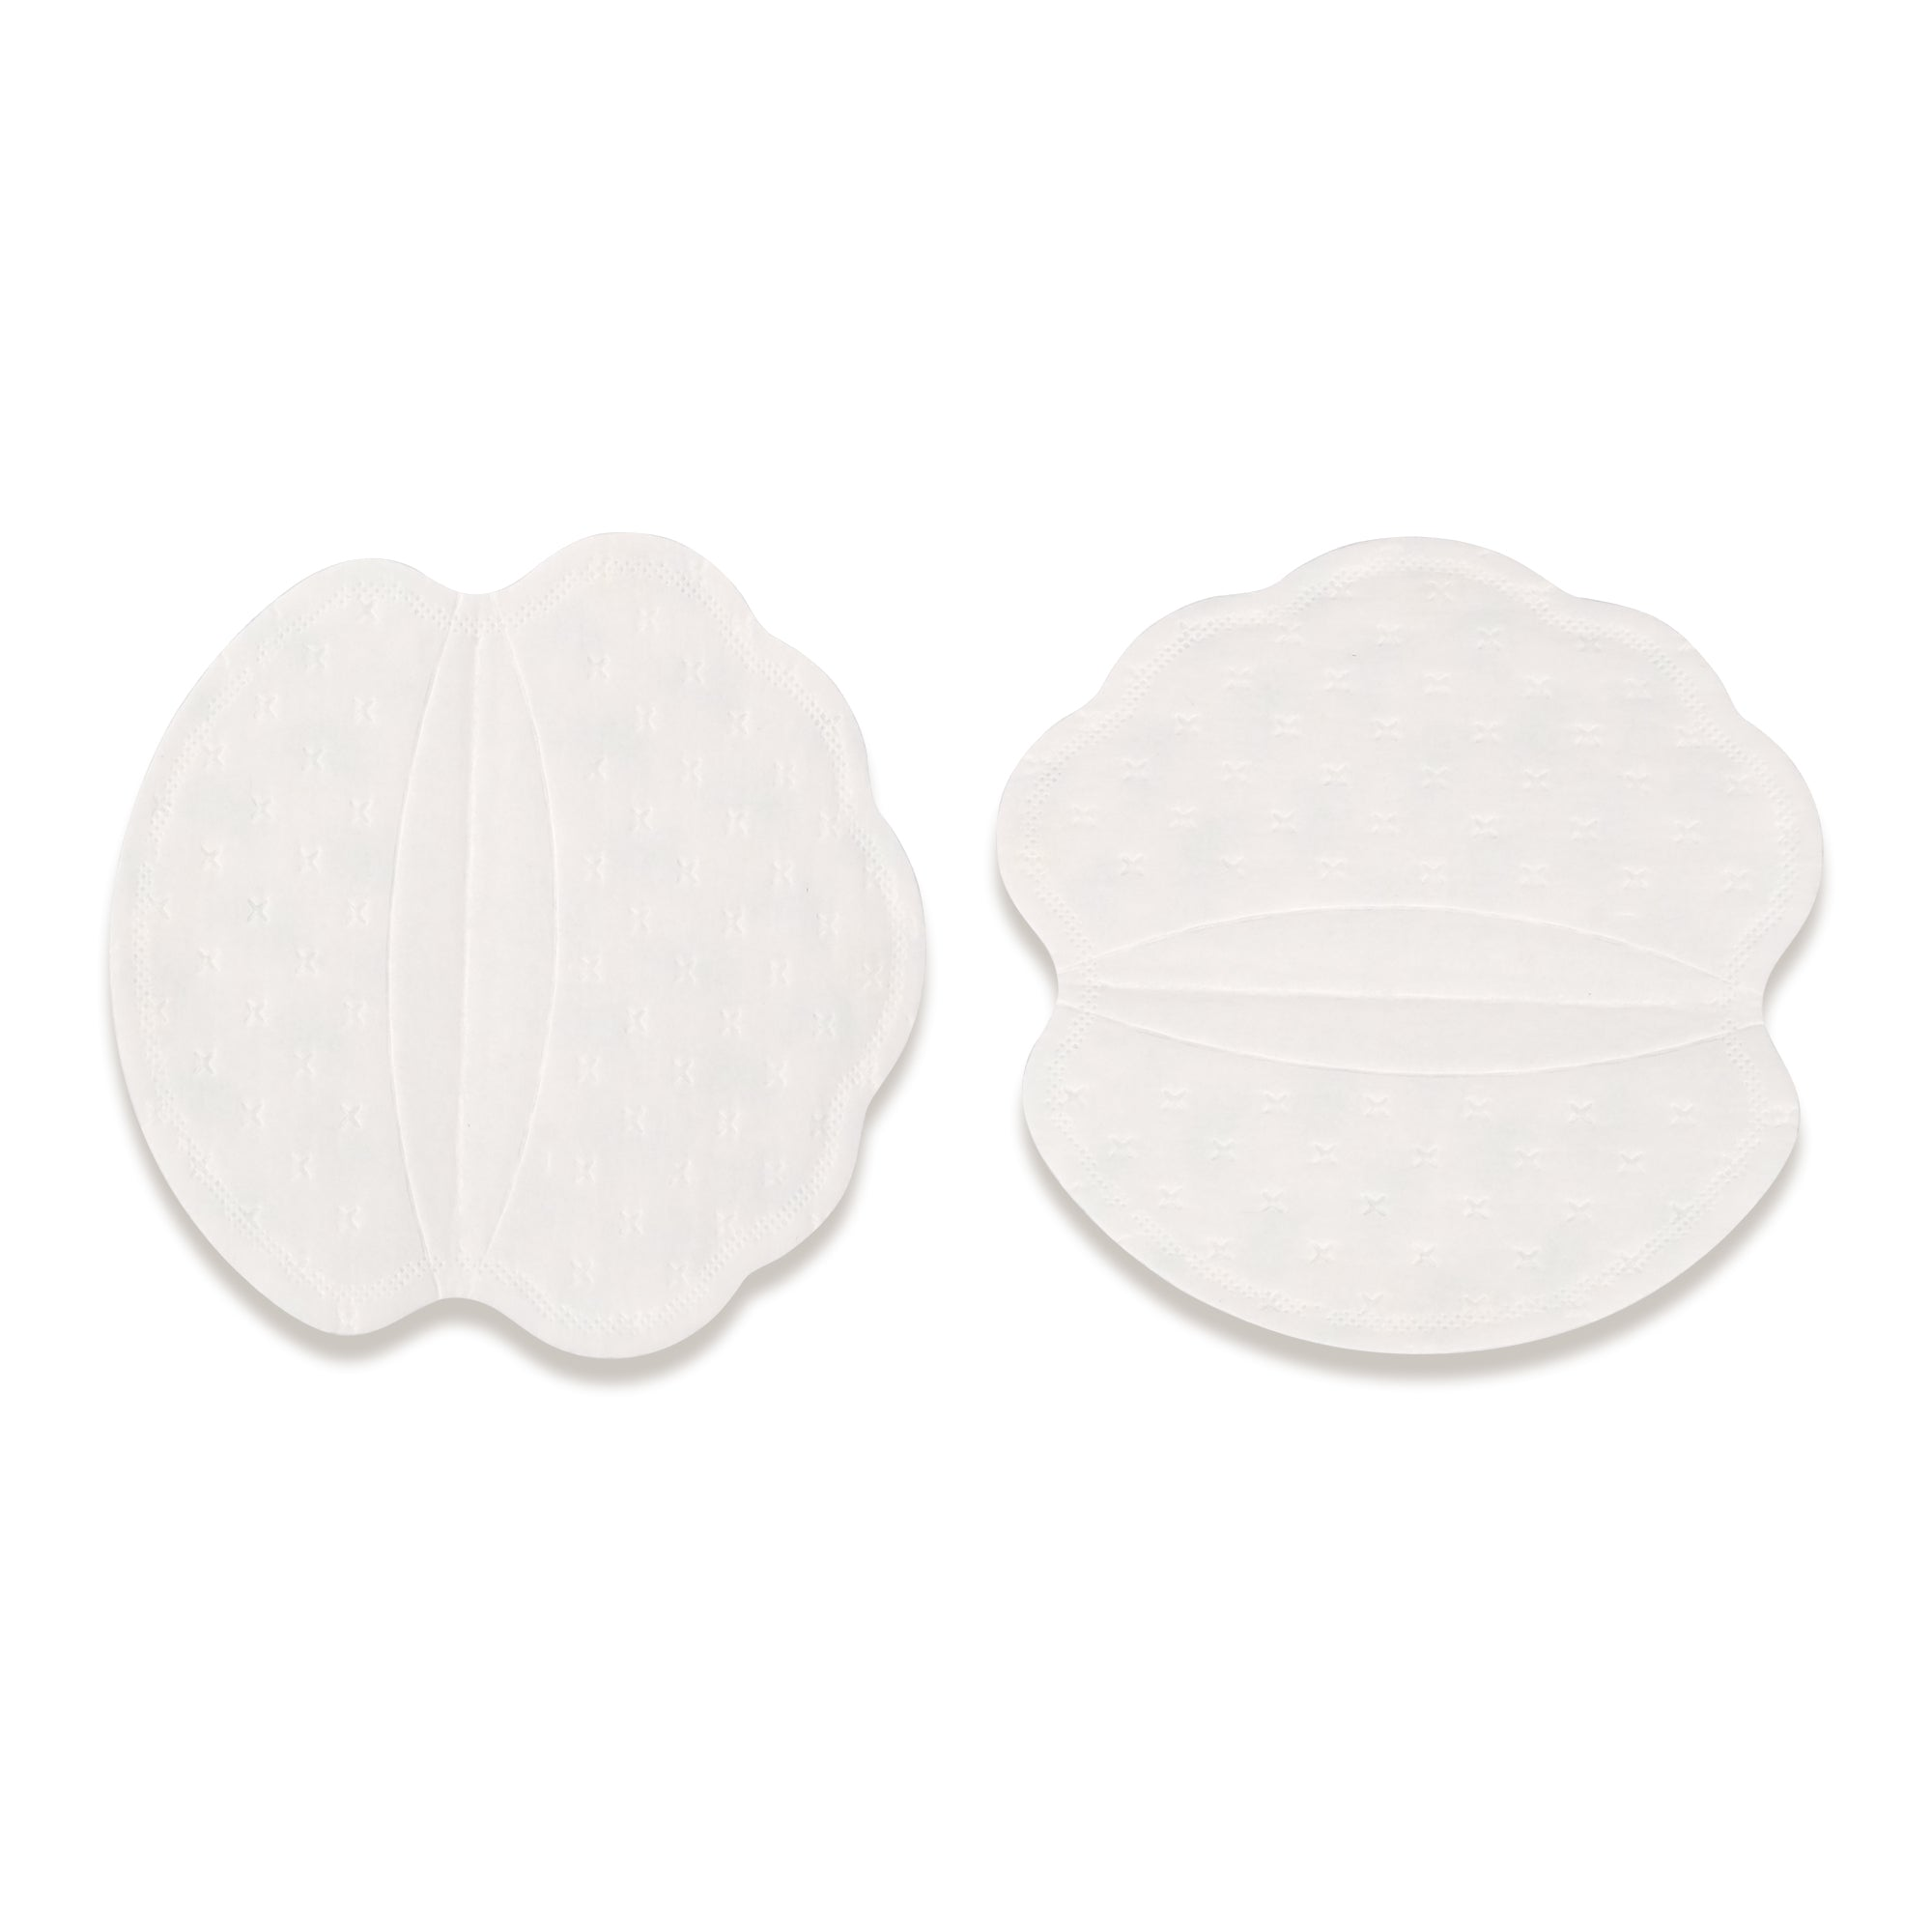 INSPI Super Underarm Absorbing Sweat Pads (20 pads)